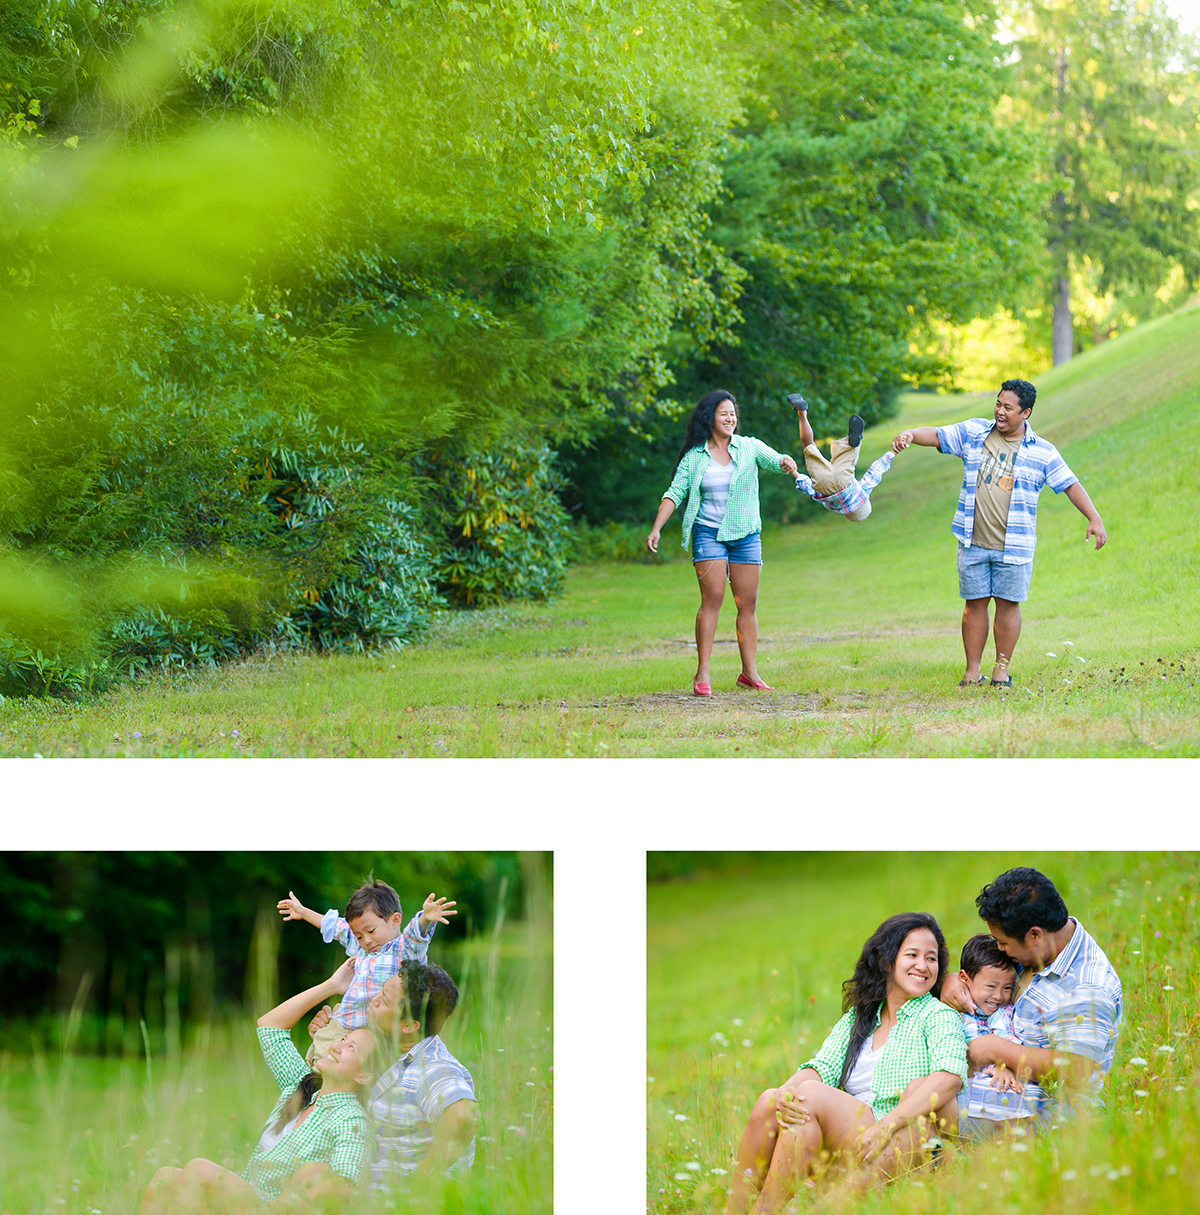 Stephen-Olivia-Gabe-family-album_spread-6